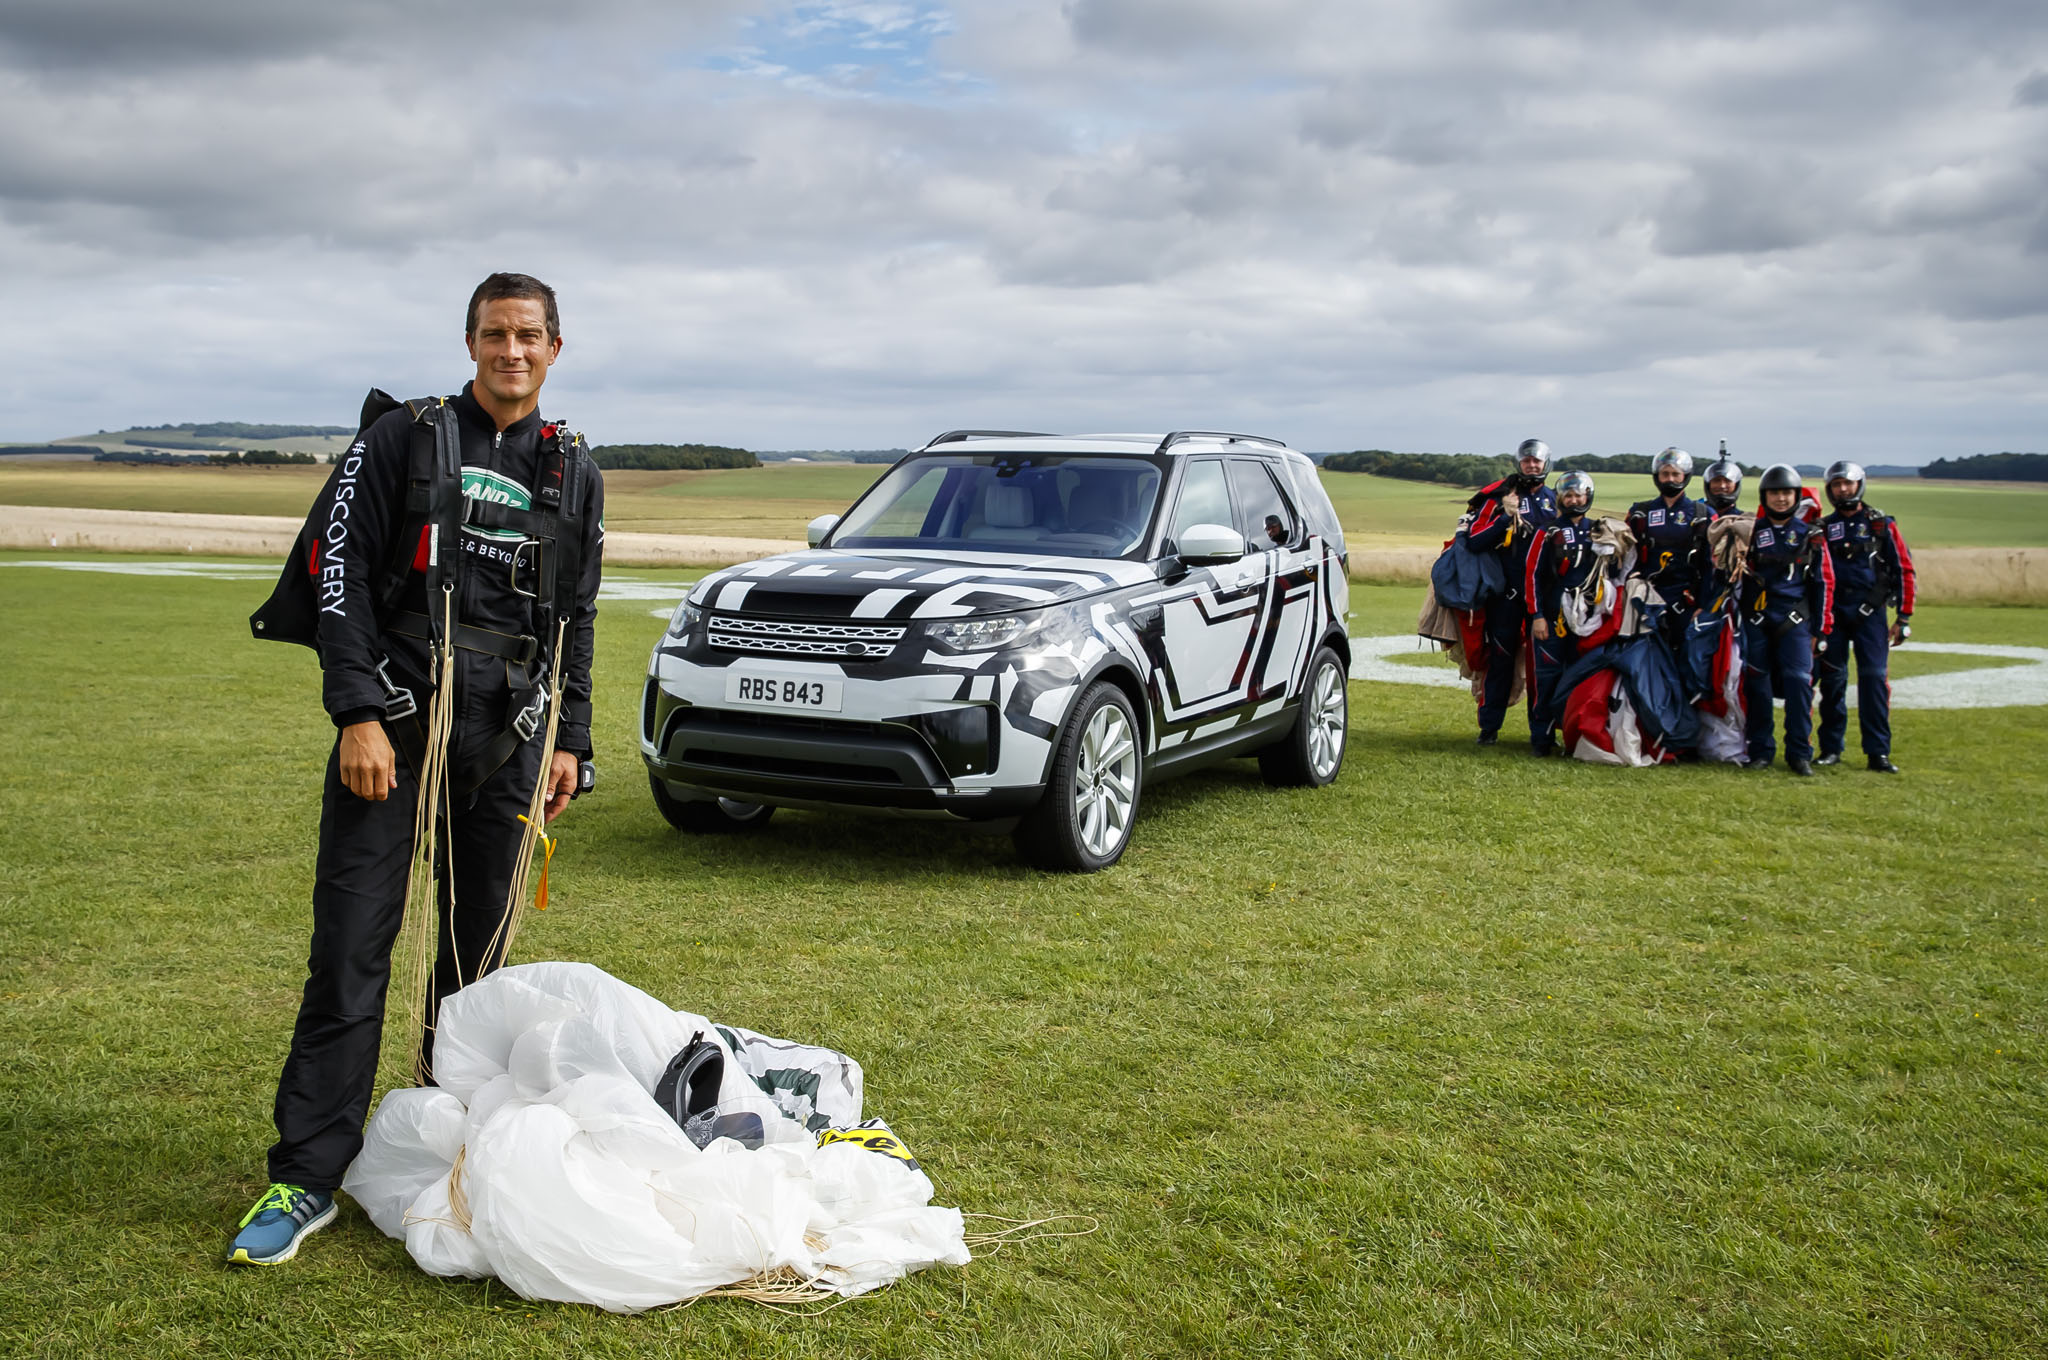 Land Rover Discovery With Bear Grylls And Royal Navy Parachute Display Team Image- All-new Land Rover Discovery